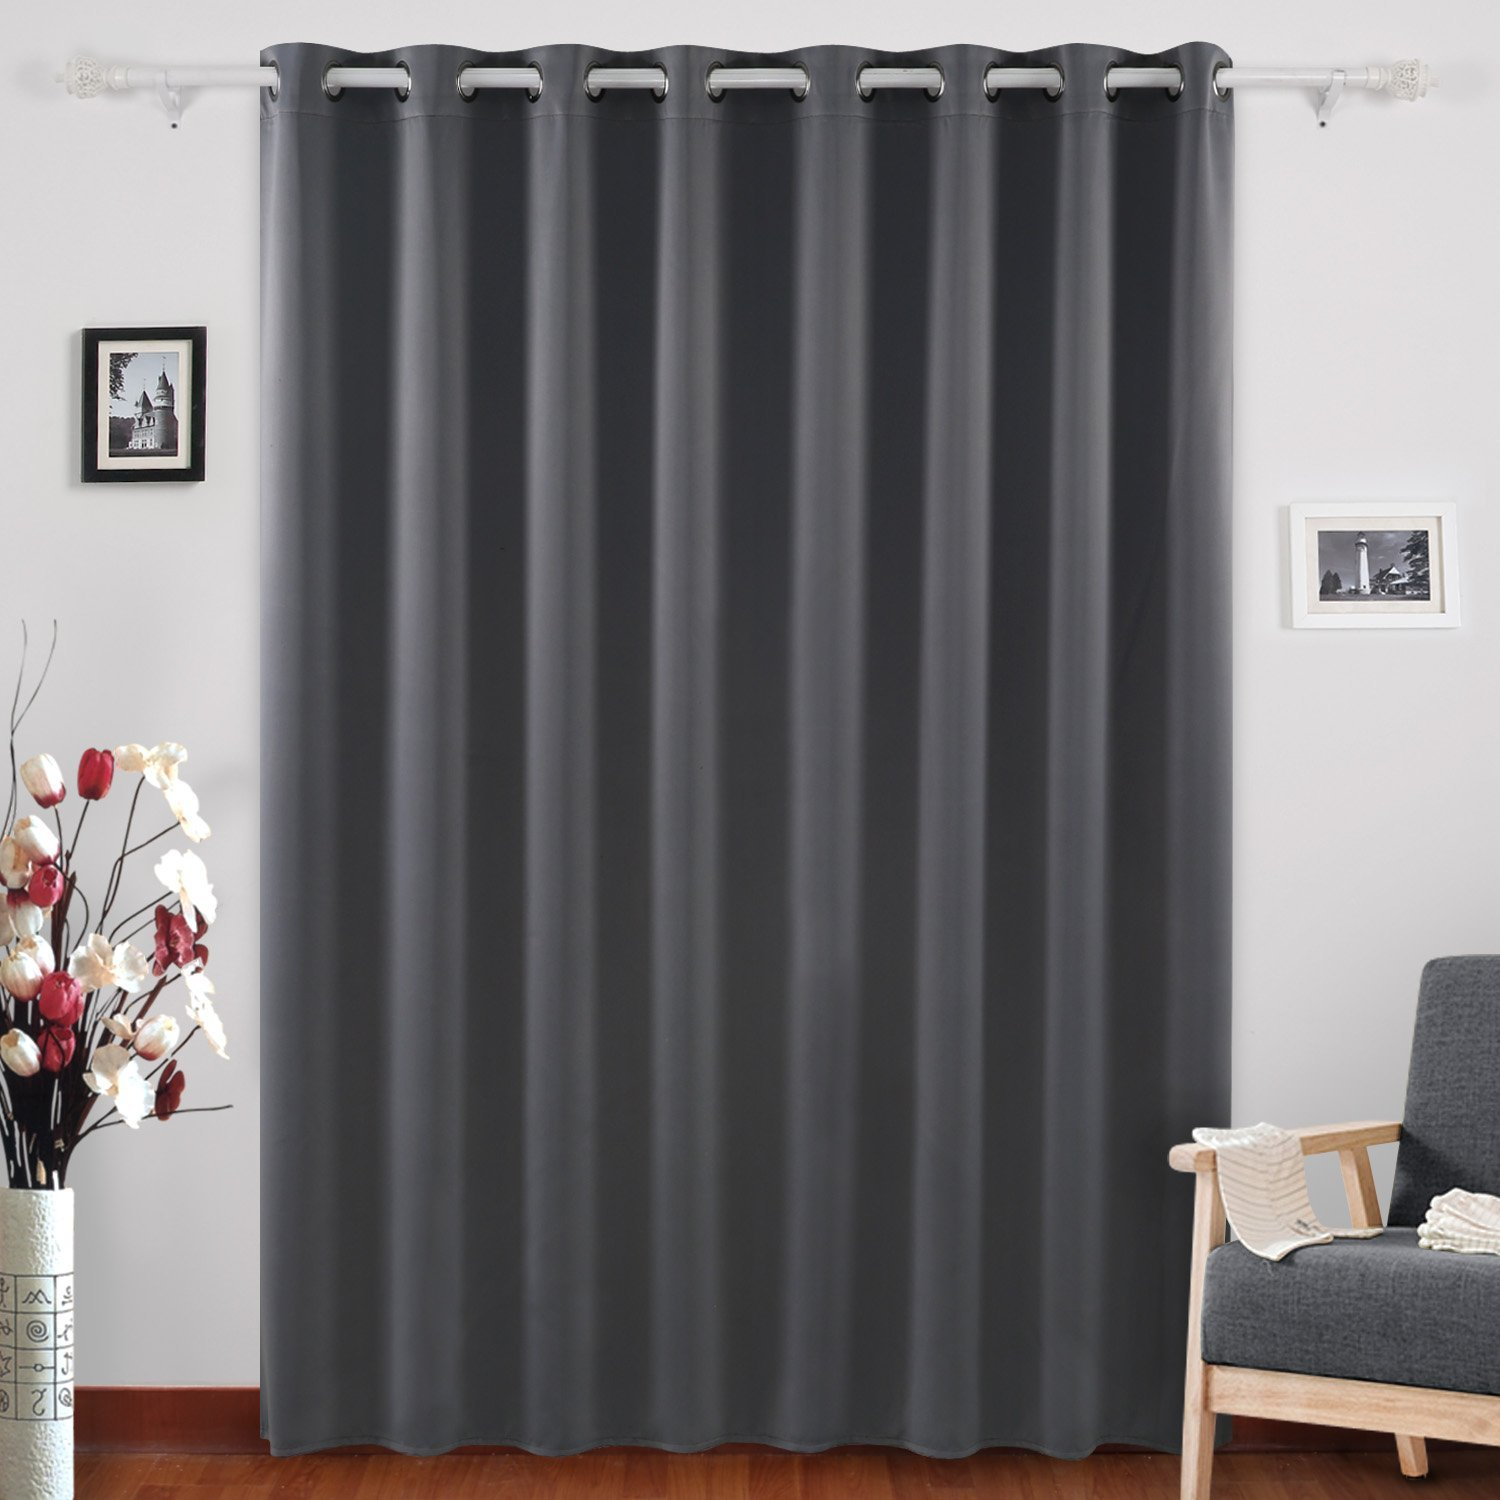 Get Quotations Deconovo Blackout Curtains Grommet Top D Wide Width For S Room 100 X 95 Inch